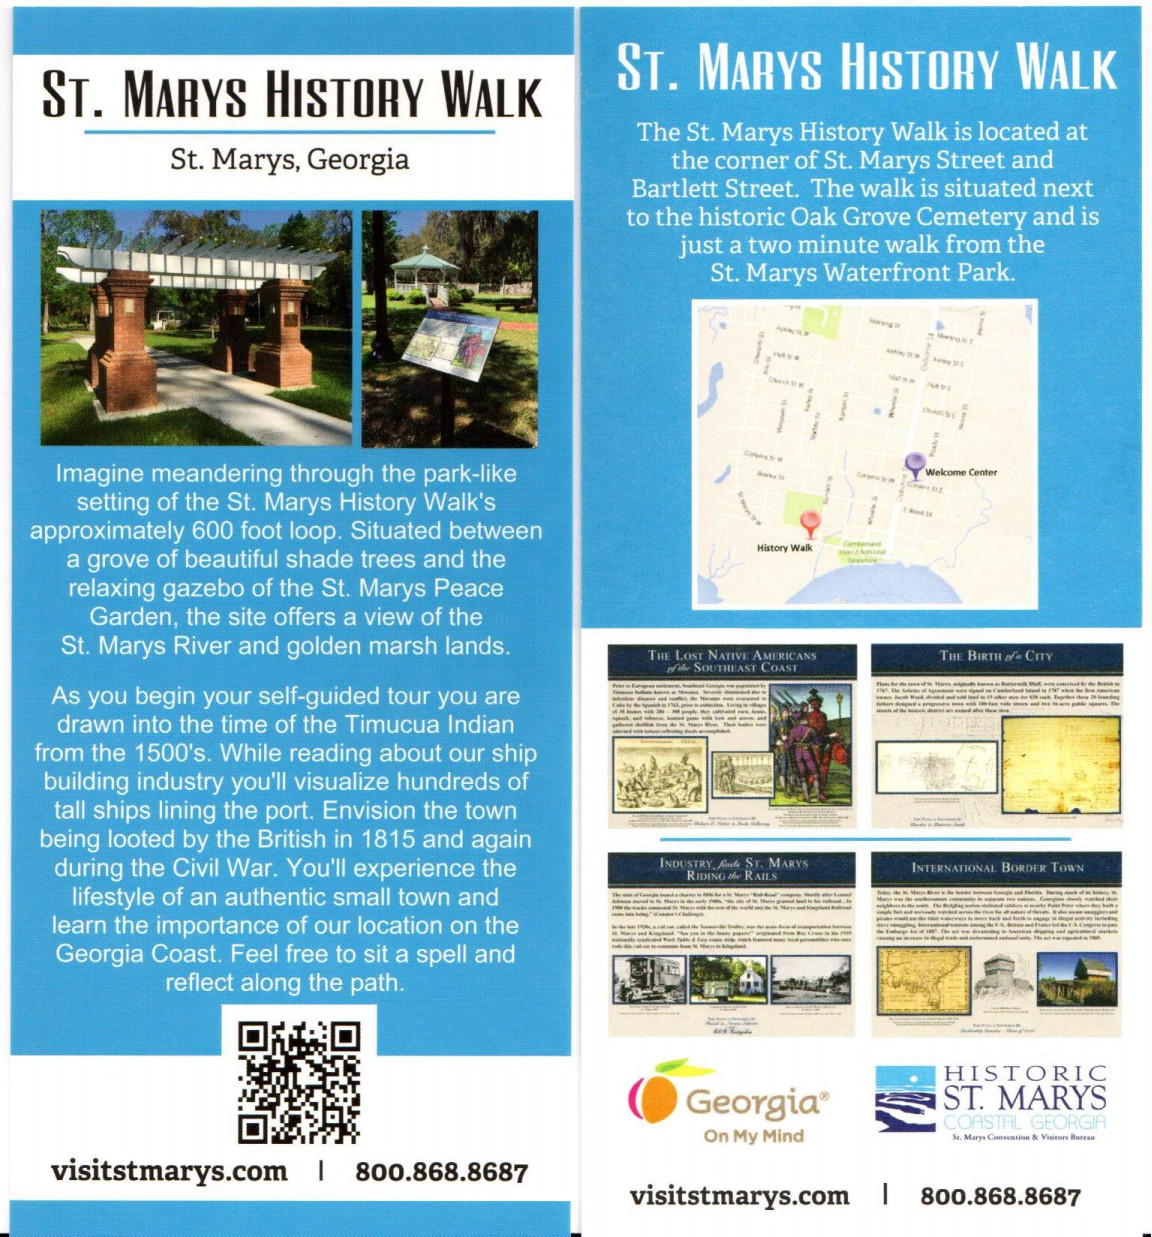 St. Marys History Walk Brochure